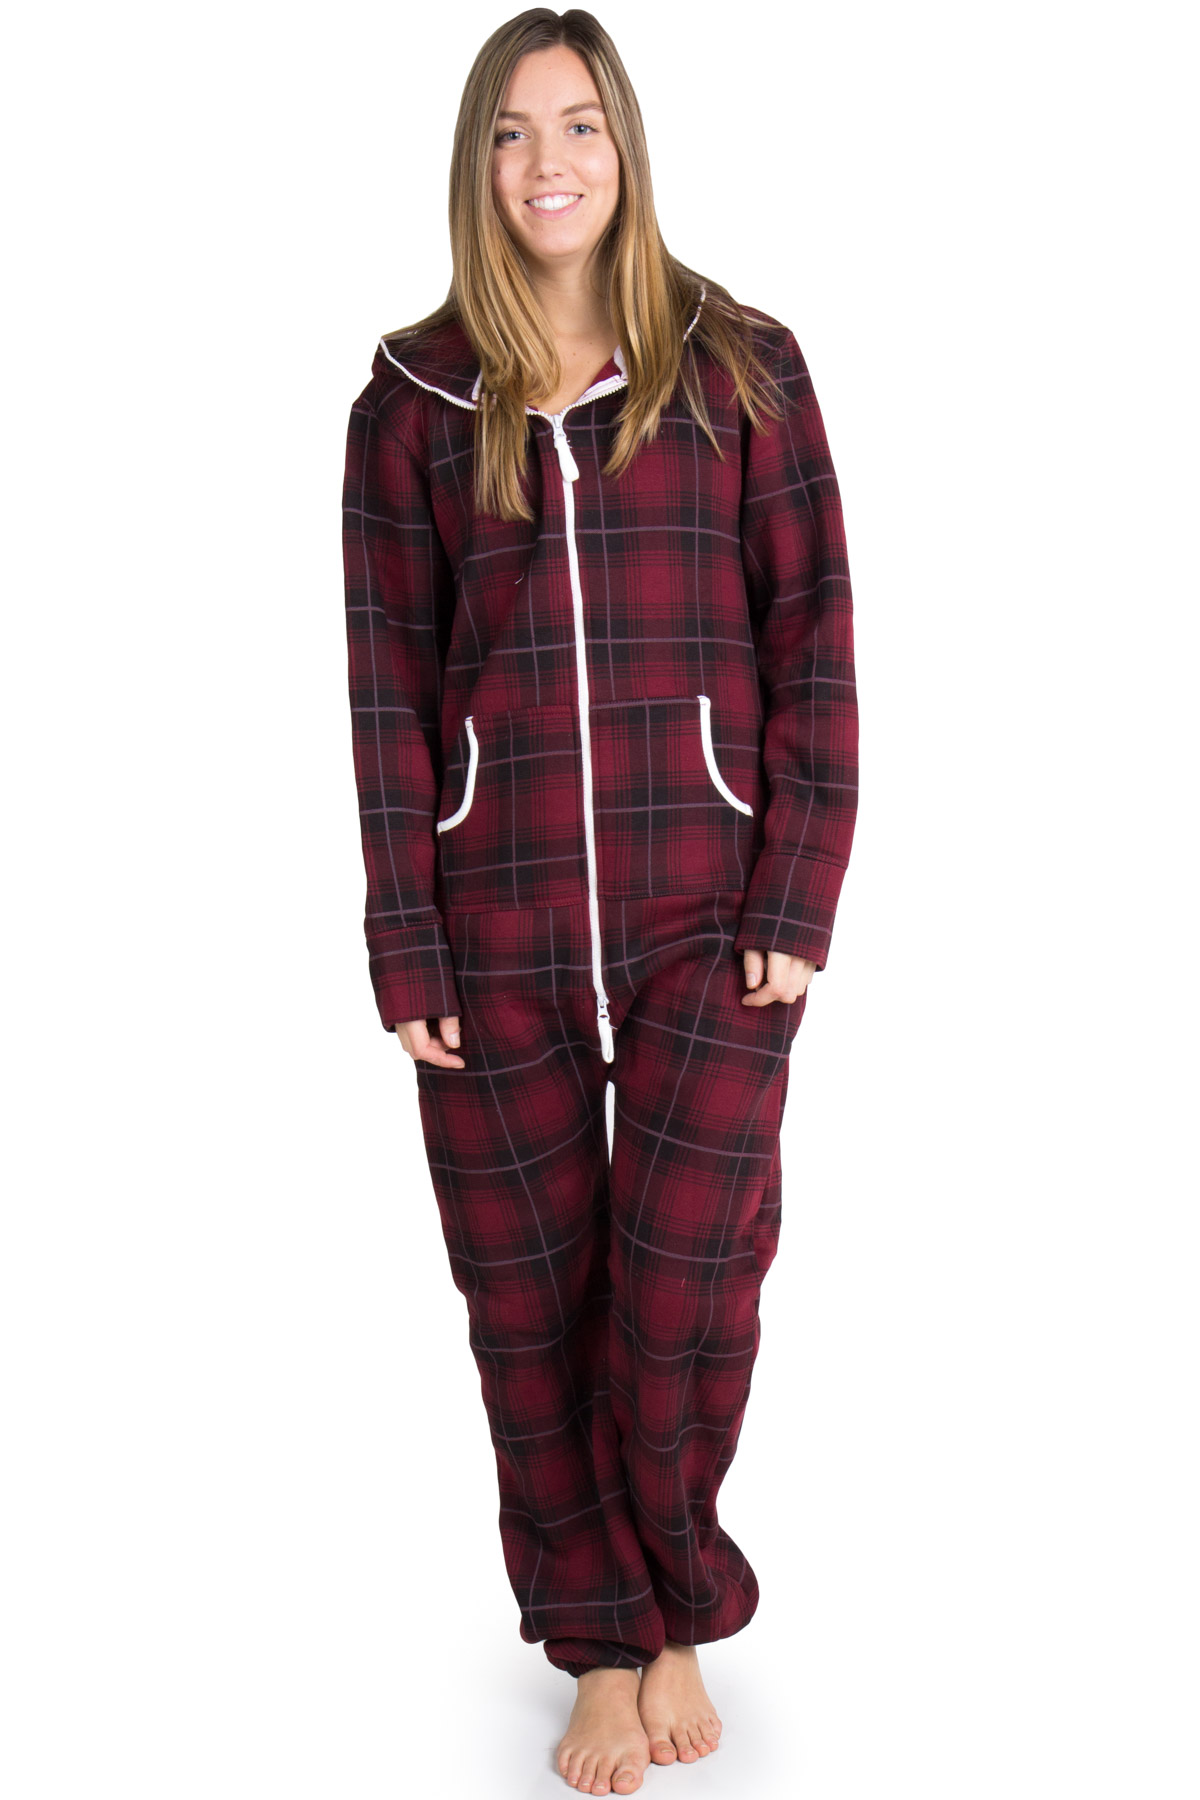 burgundy plaid onesie pajamas